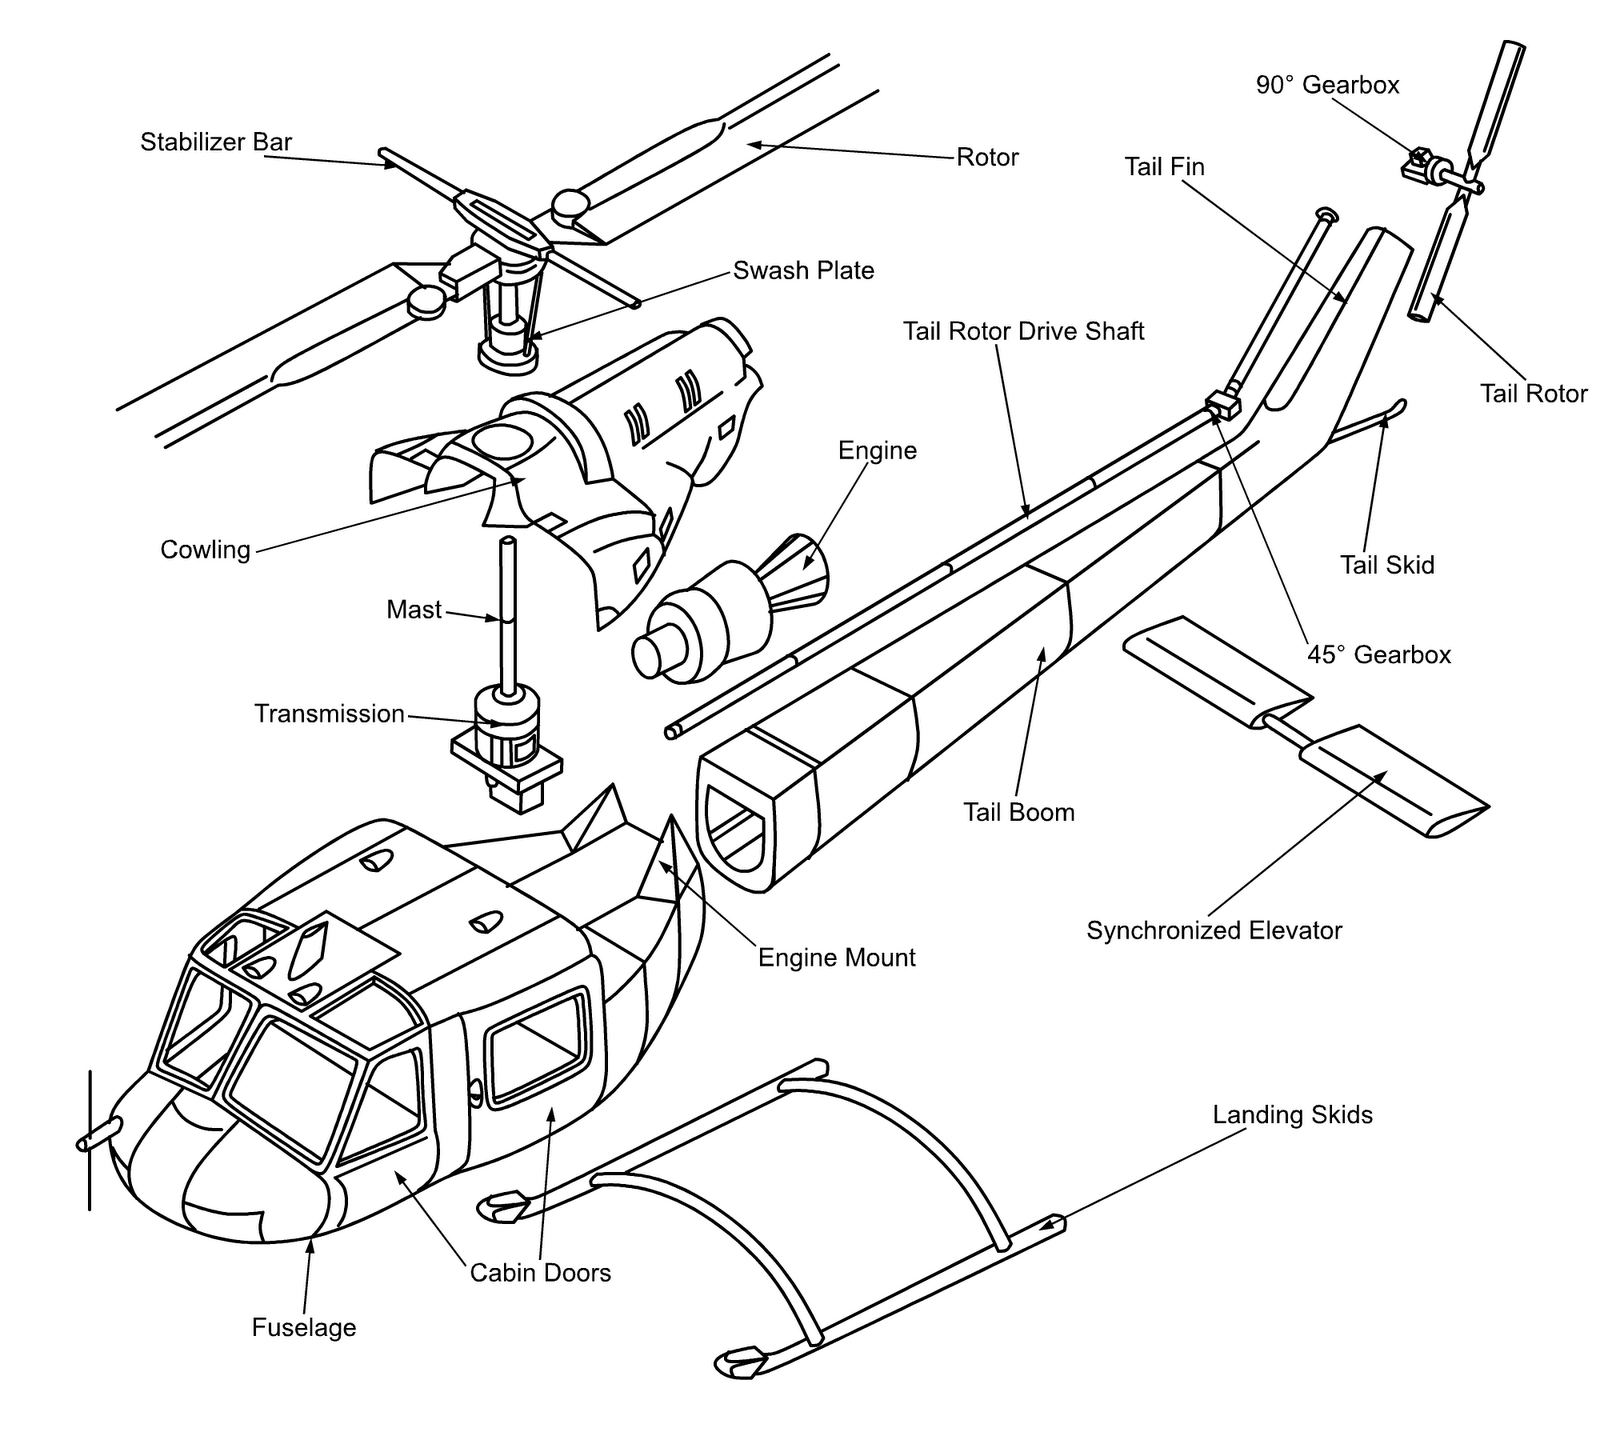 Rotor engine mazda copter חיפוש ב quadcopter inspiration pinterest mazda engine and helicopter rotor